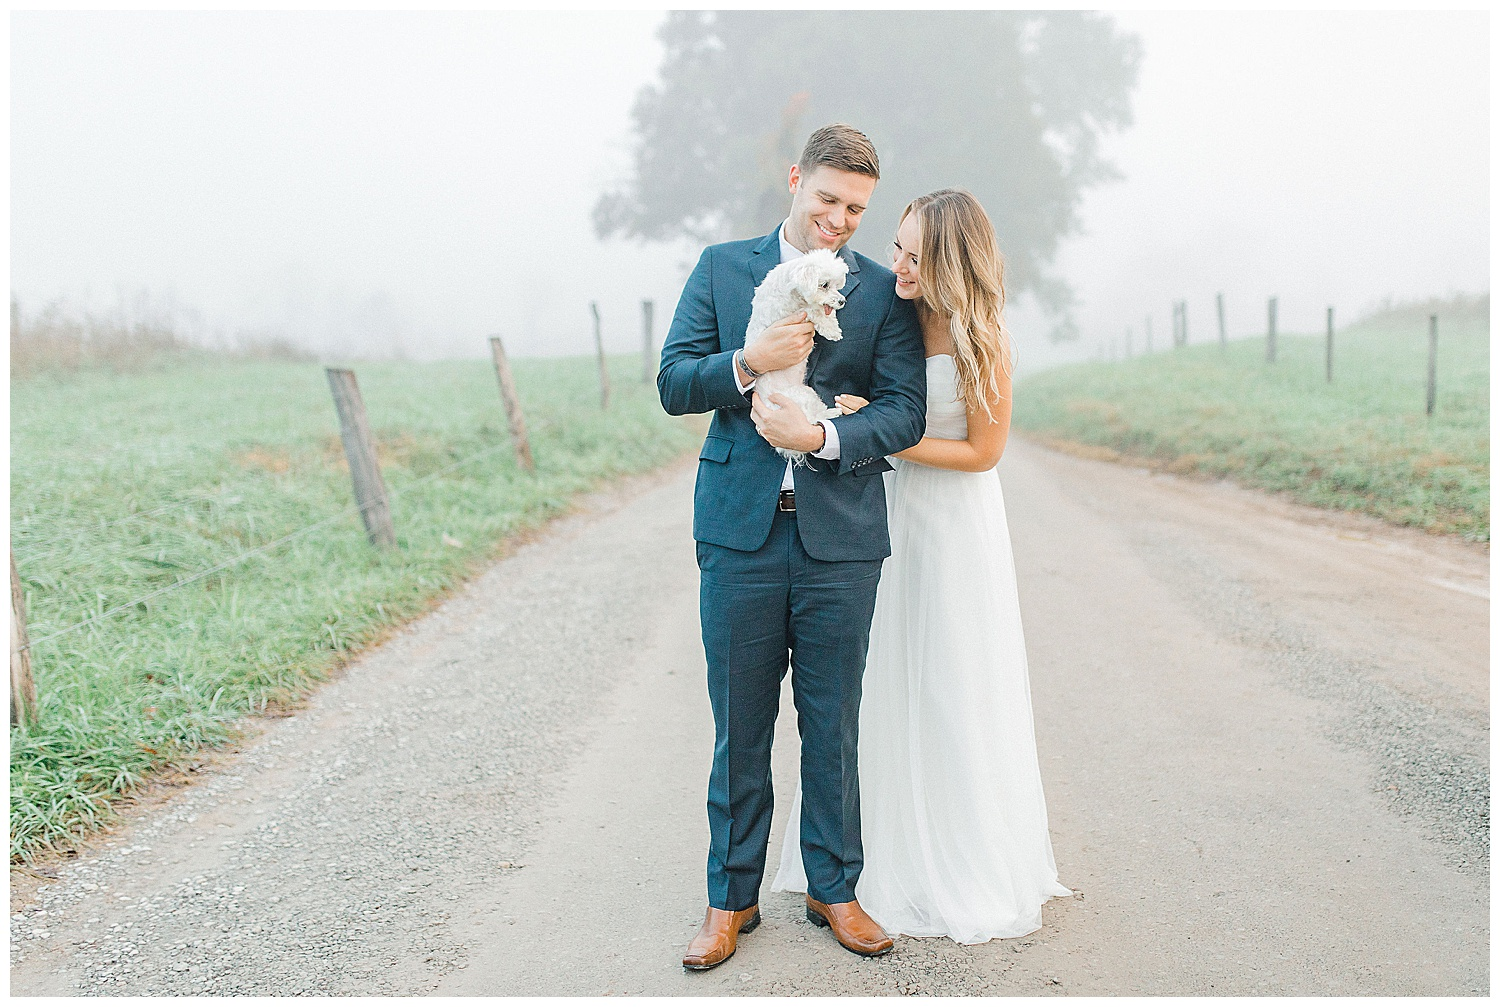 Emma Rose Company recently got to travel all the way to Nashville to photograph the most beautiful post-wedding bride and groom portraits in the Great Smoky Mountains with a gorgeous couple! Nashville wedding inspiration at it's finest._0007.jpg